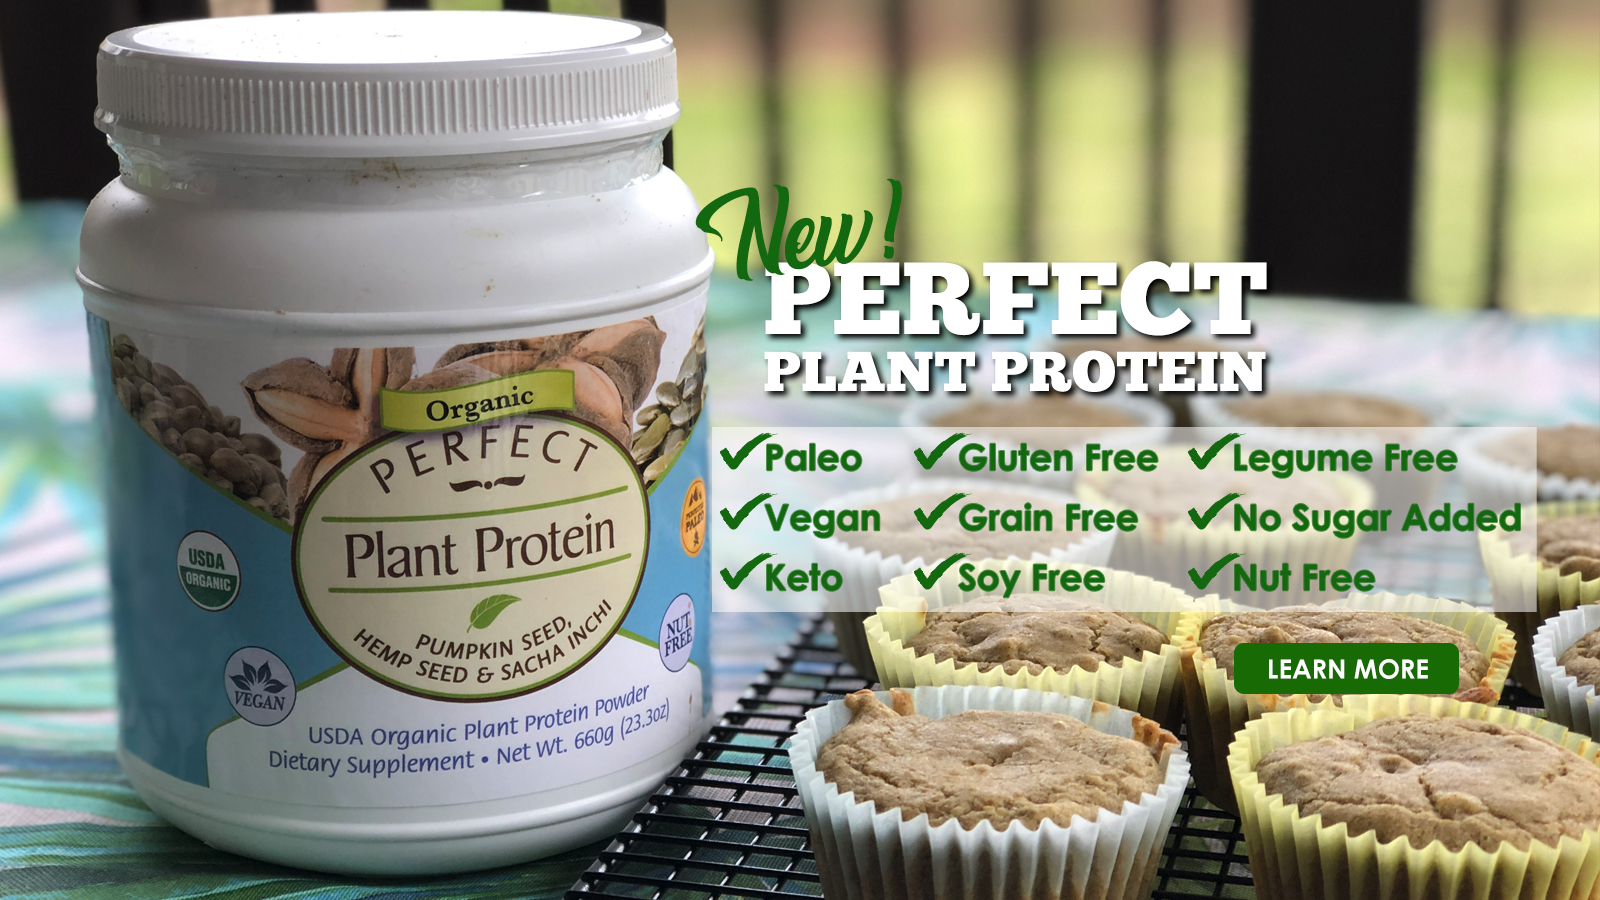 Perfect Supplements Perfect Plant Protein Ad Banner (1600 x 900)